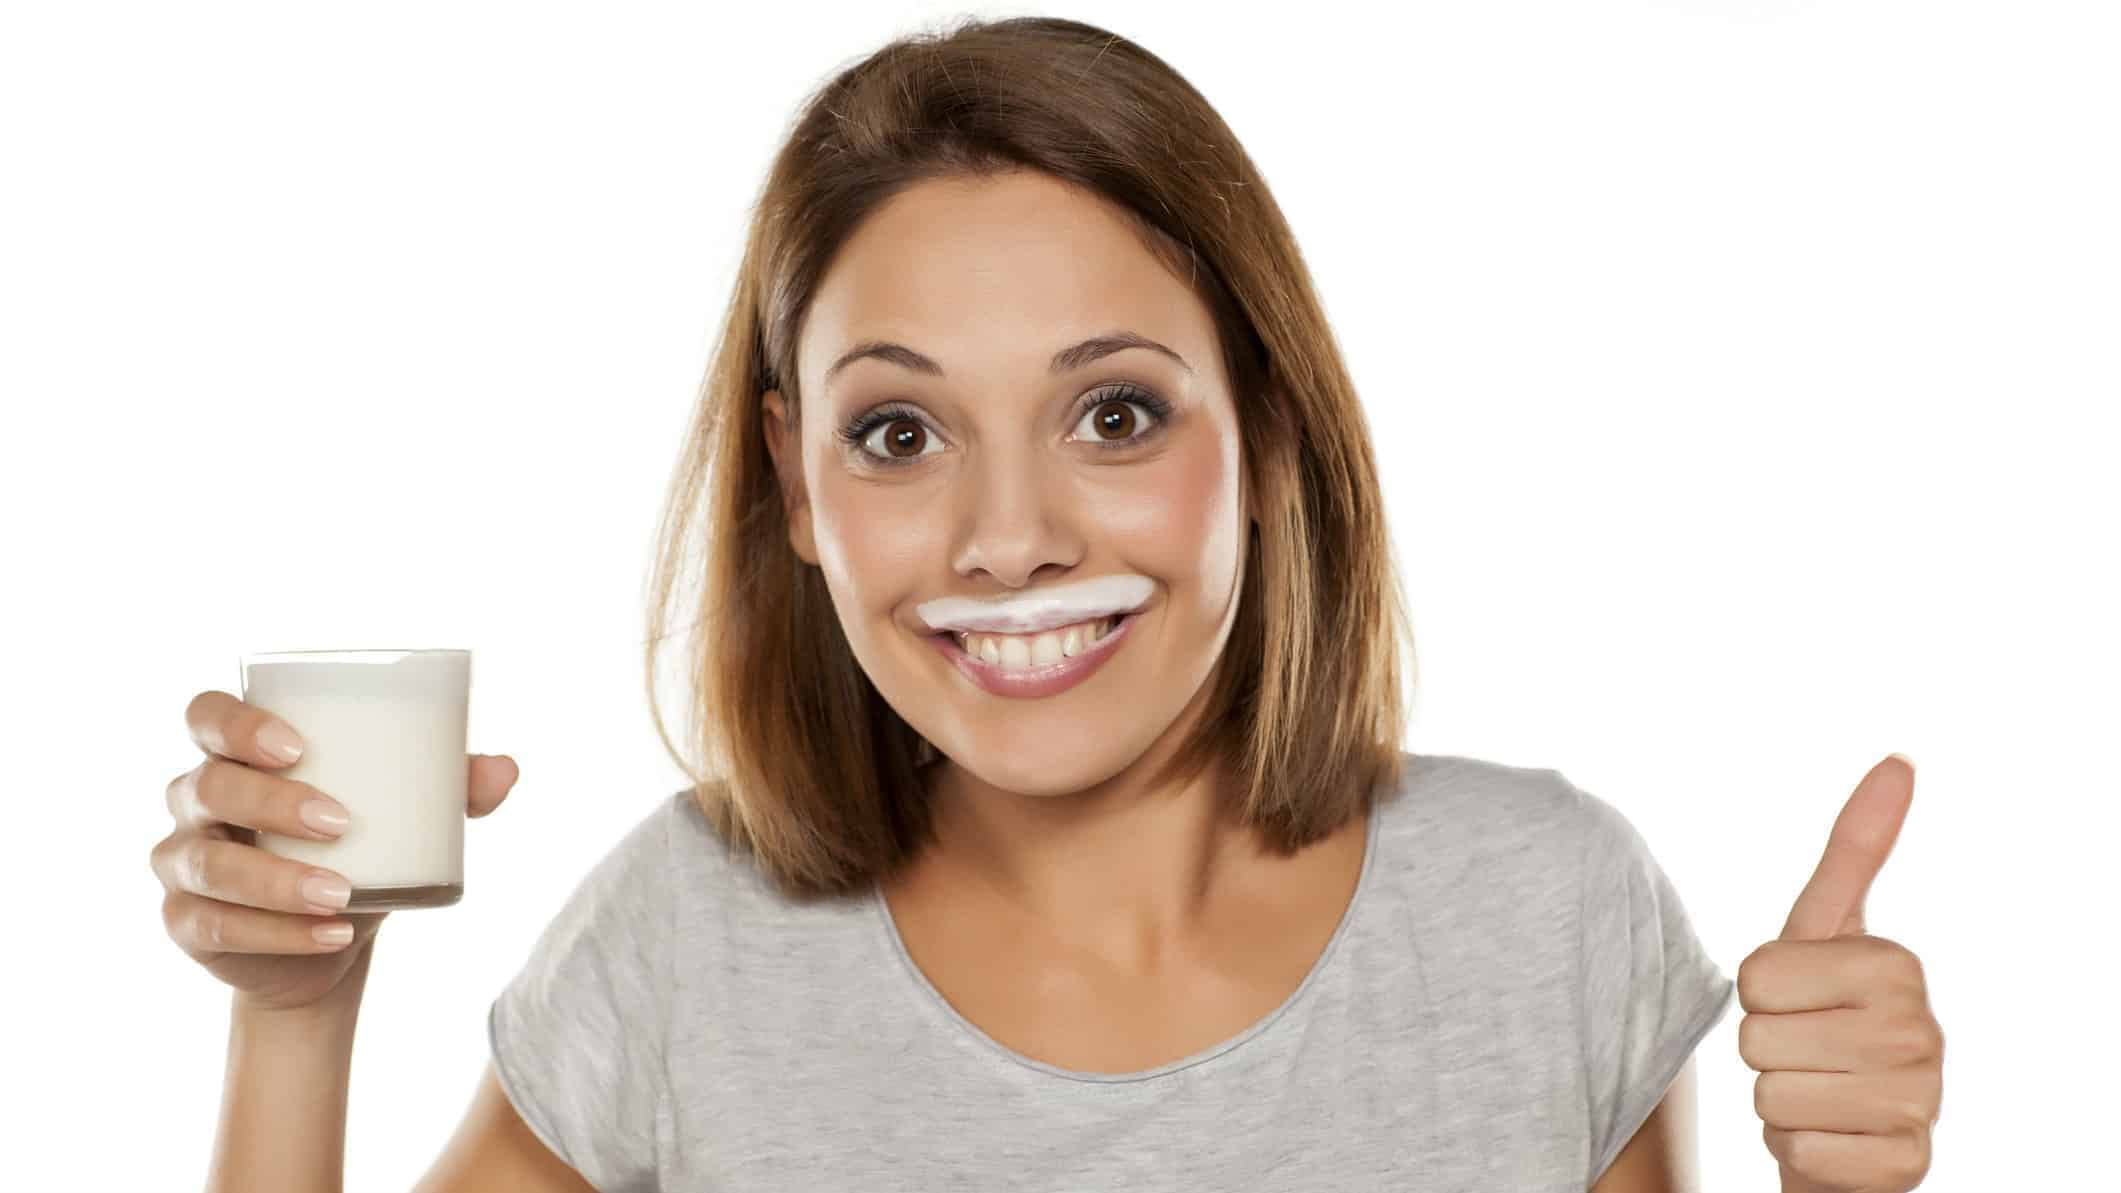 woman with milk moustache holding glass of milk and giving thumbs up representing a positive share price